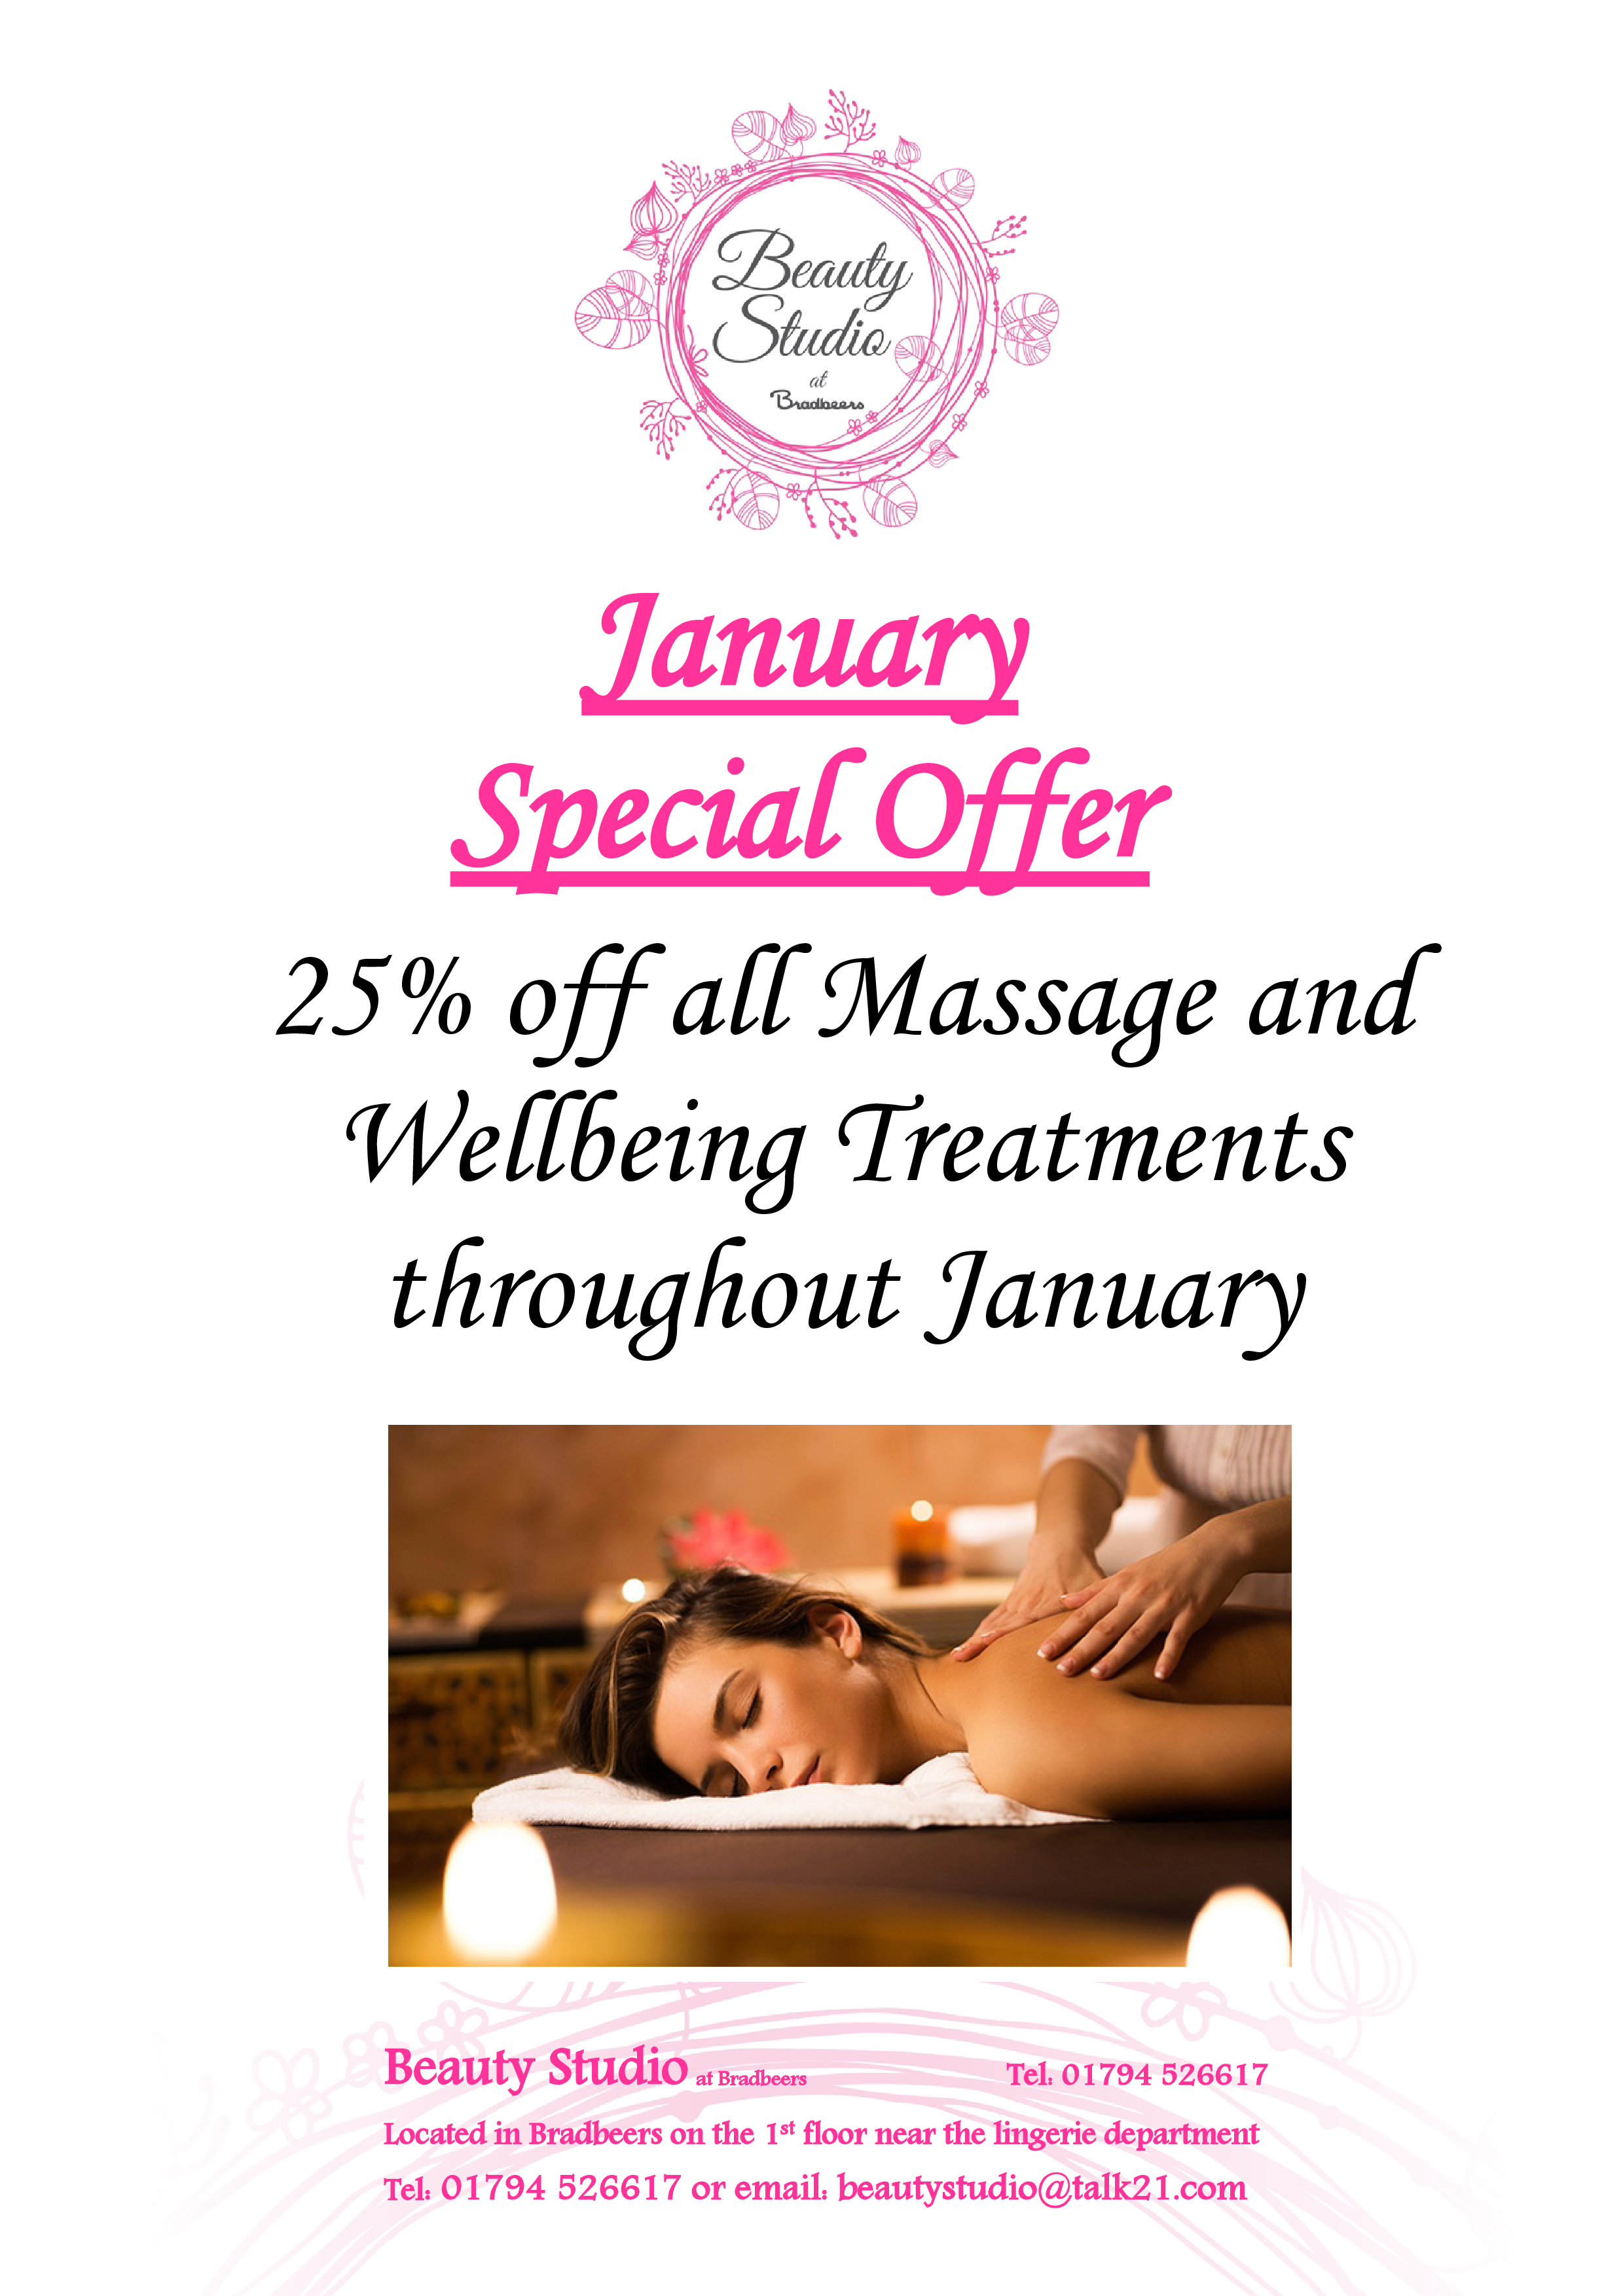 1. January Special Offer